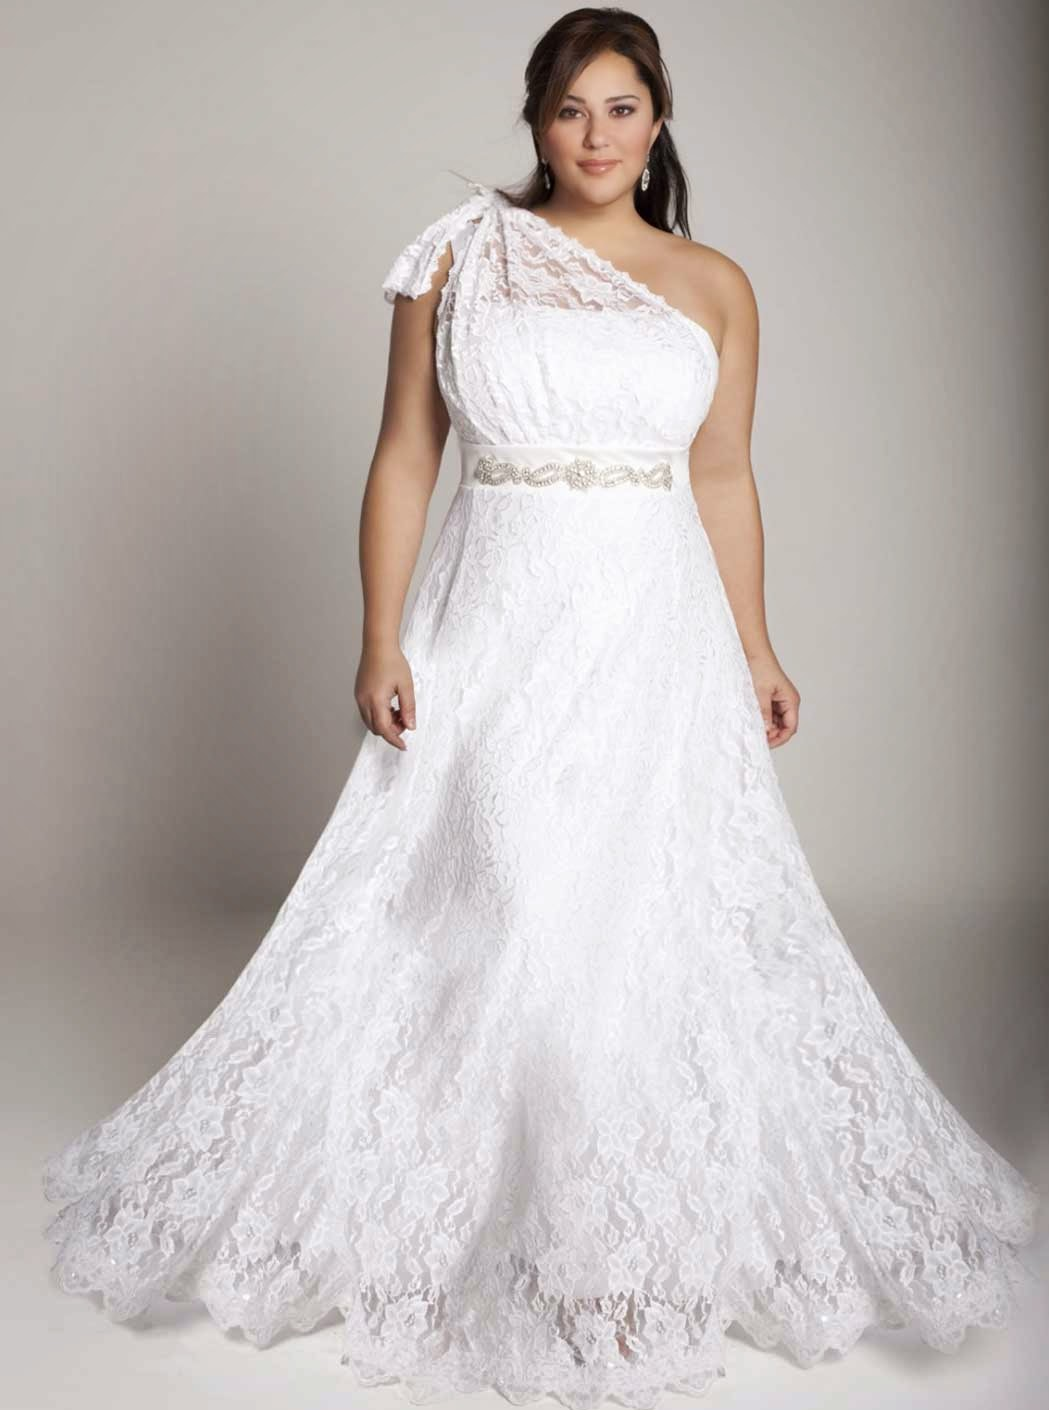 Casual lace wedding dresses for Casual lace wedding dress